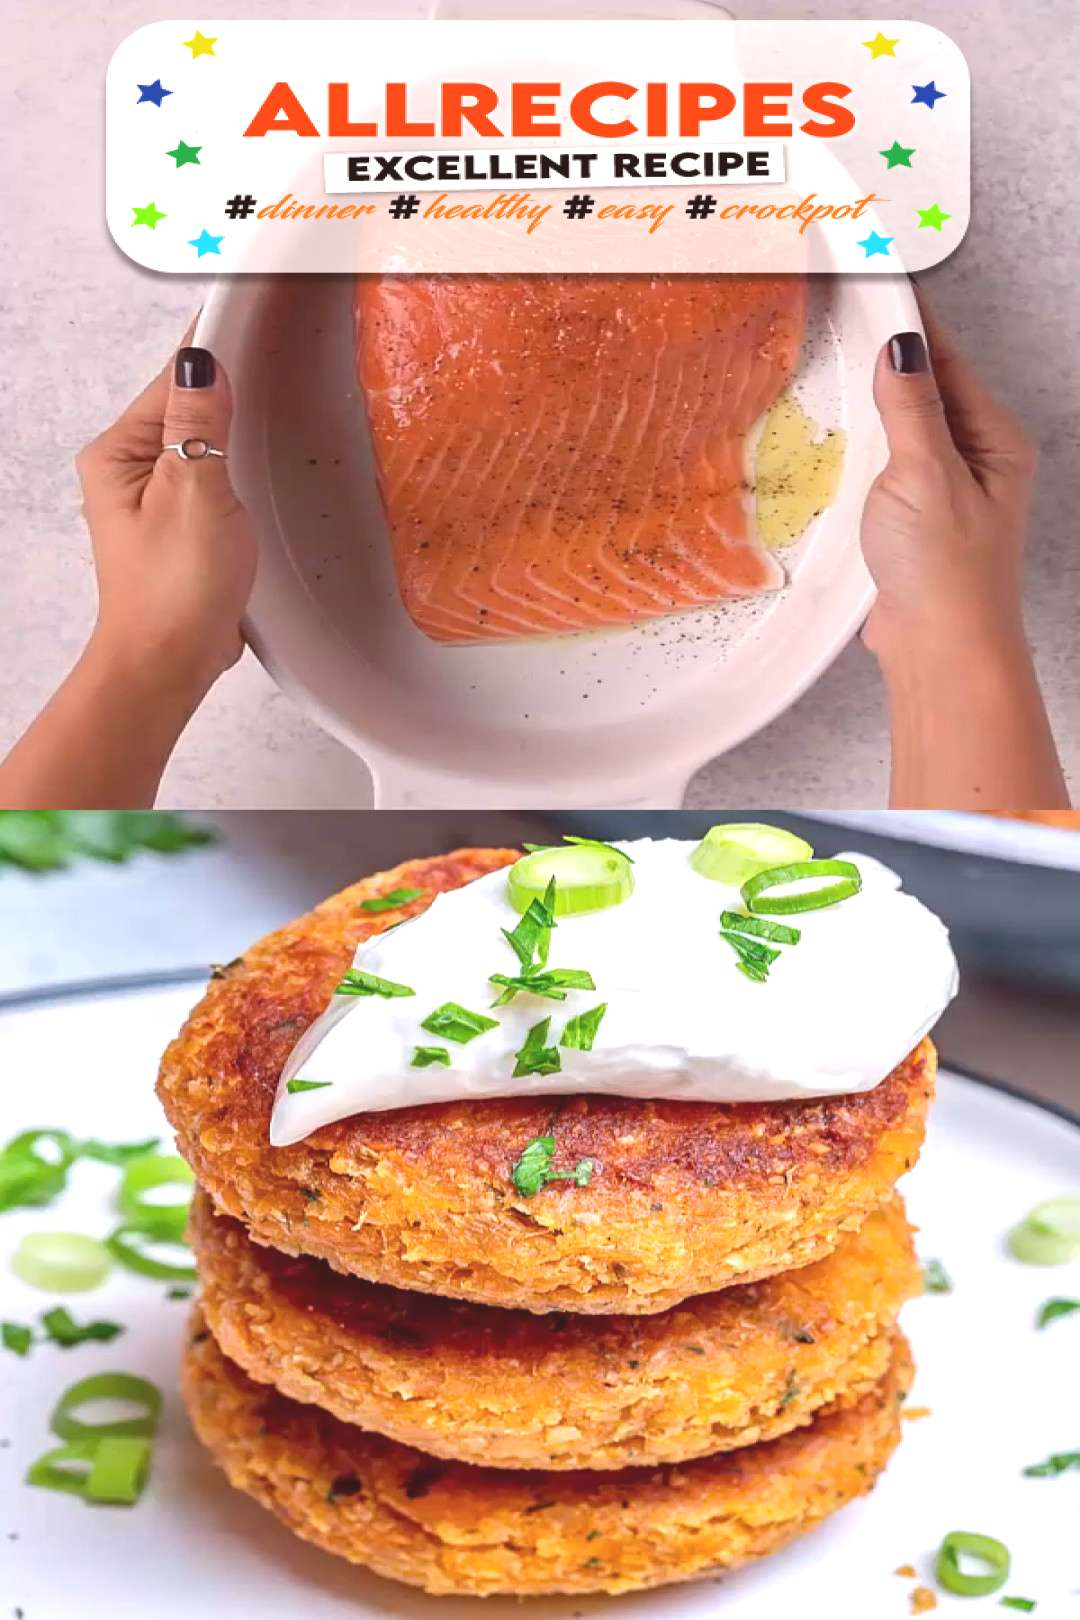 EASY SALMON PATTIES - - This salmon recipe will be one of your favorite lunch or dinner meal. They